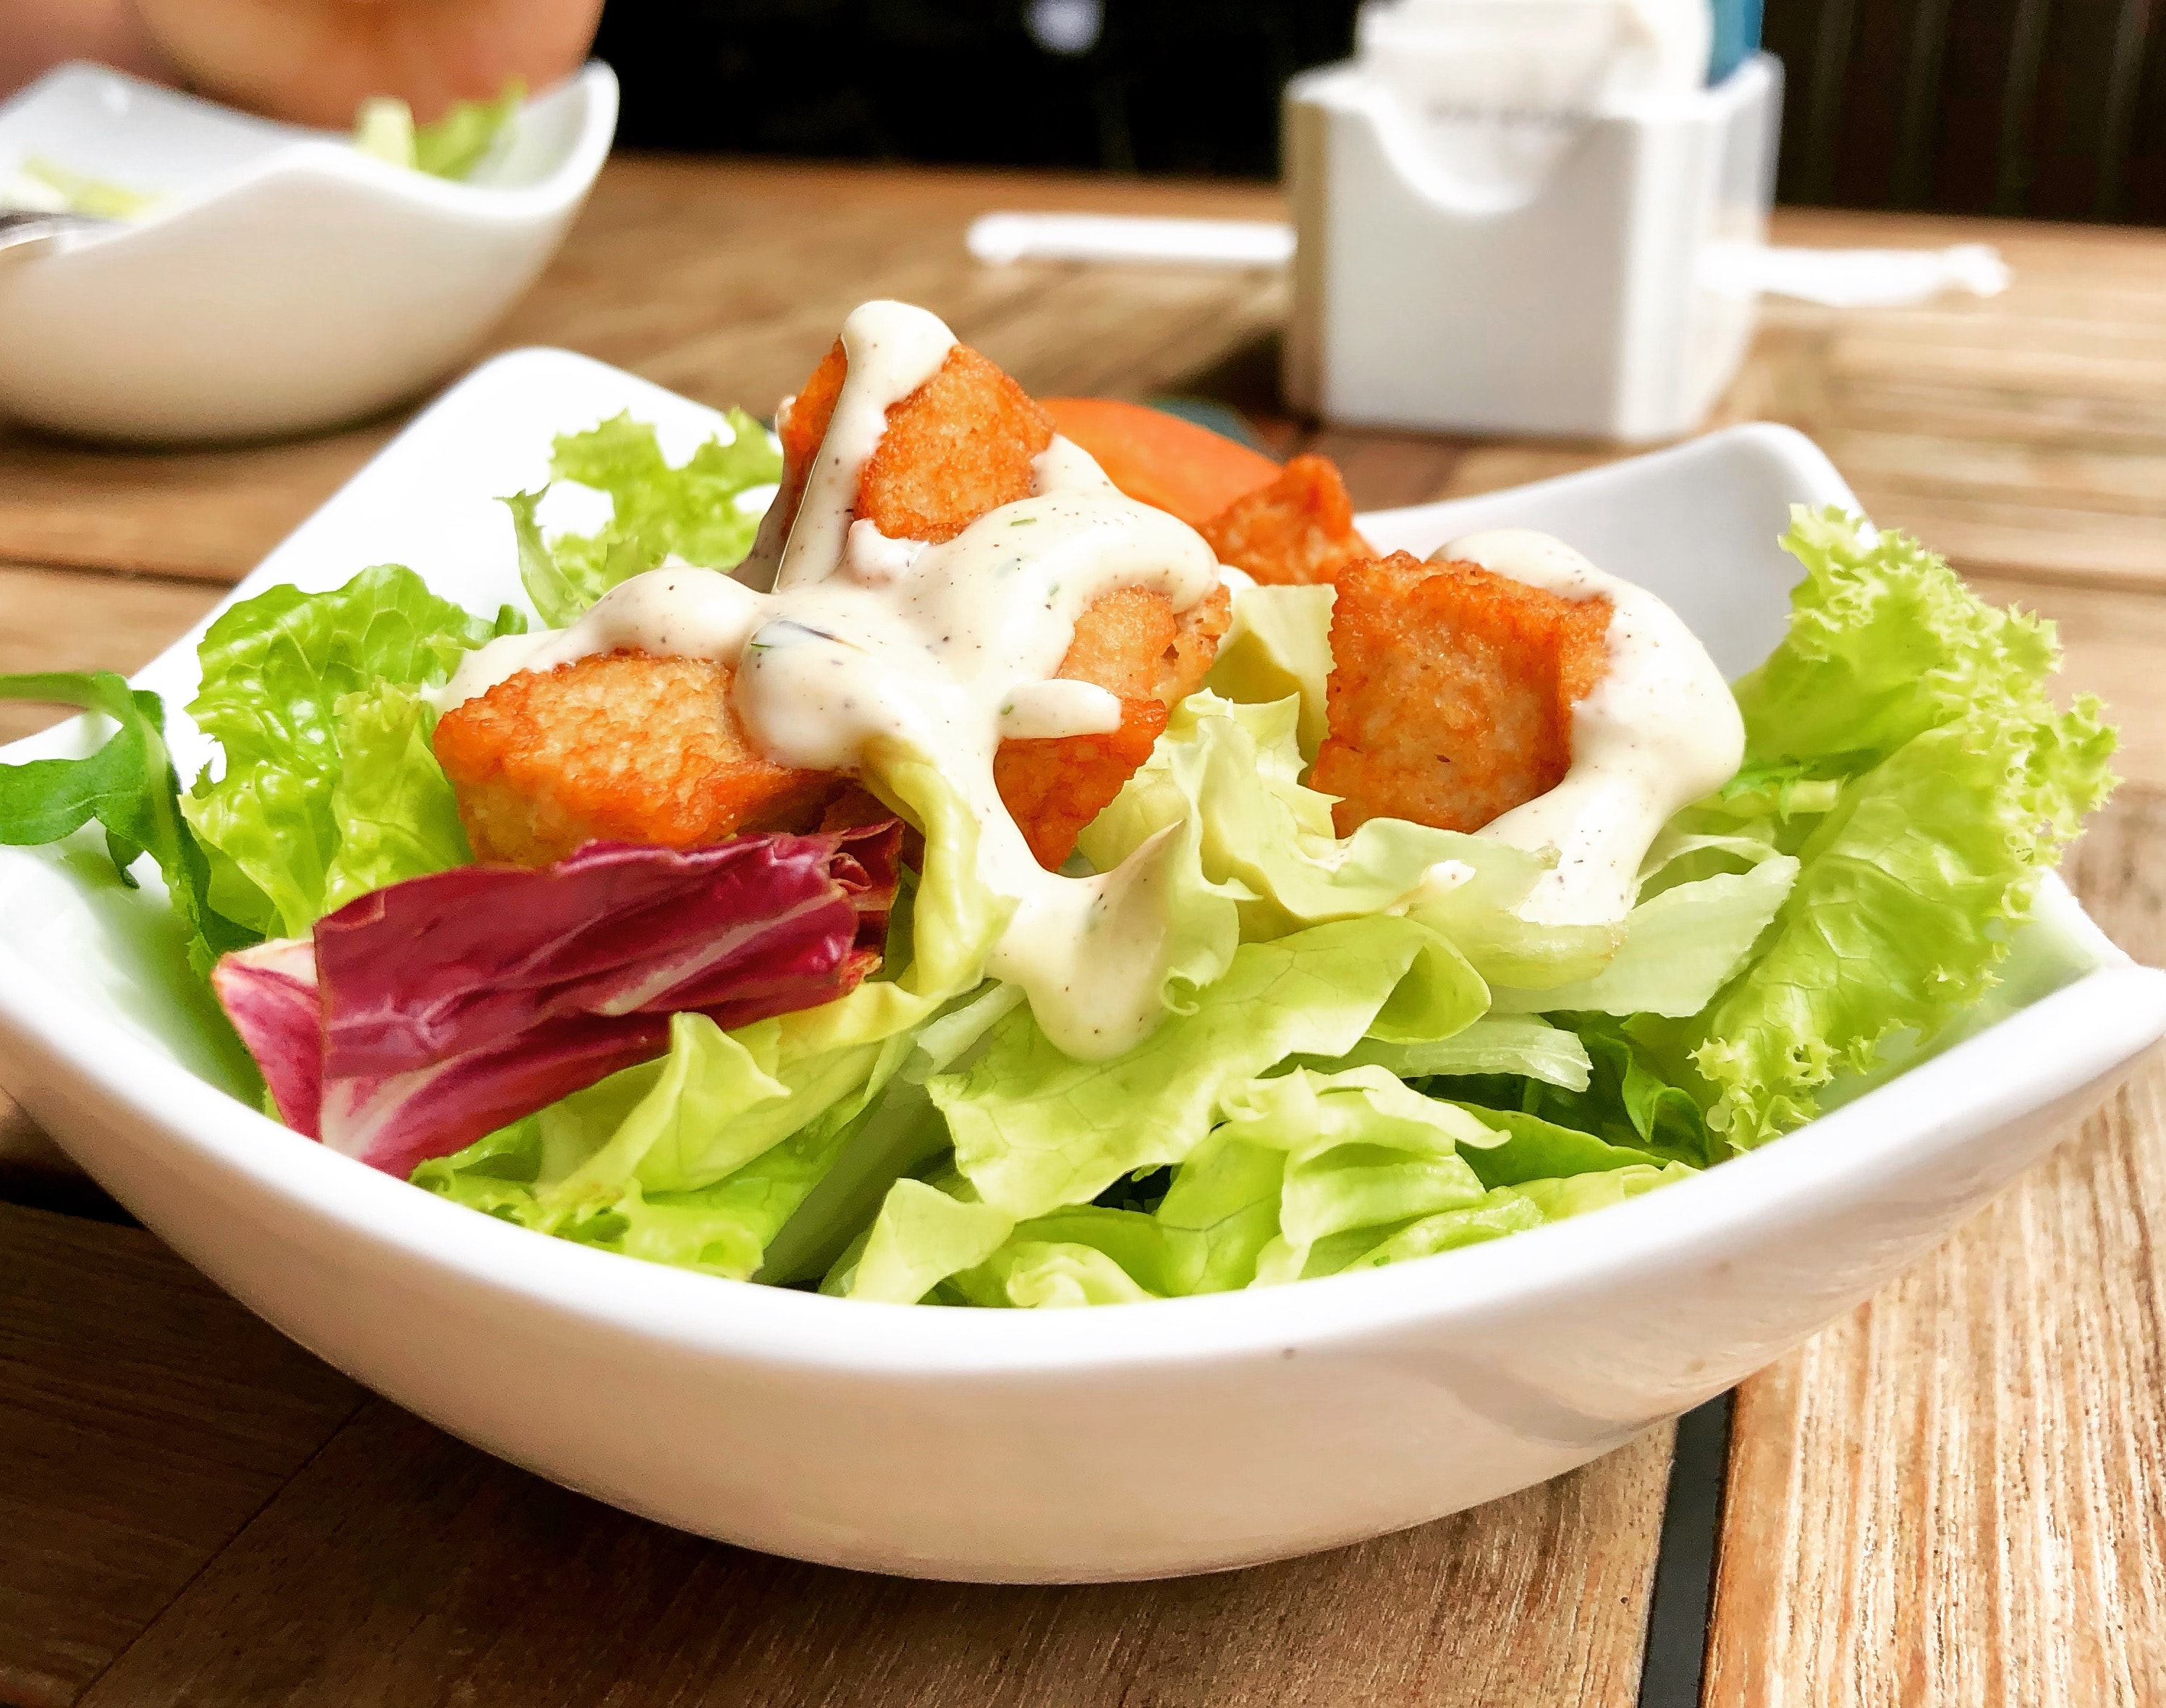 Vegetable salad on top of white ceramic plate photo